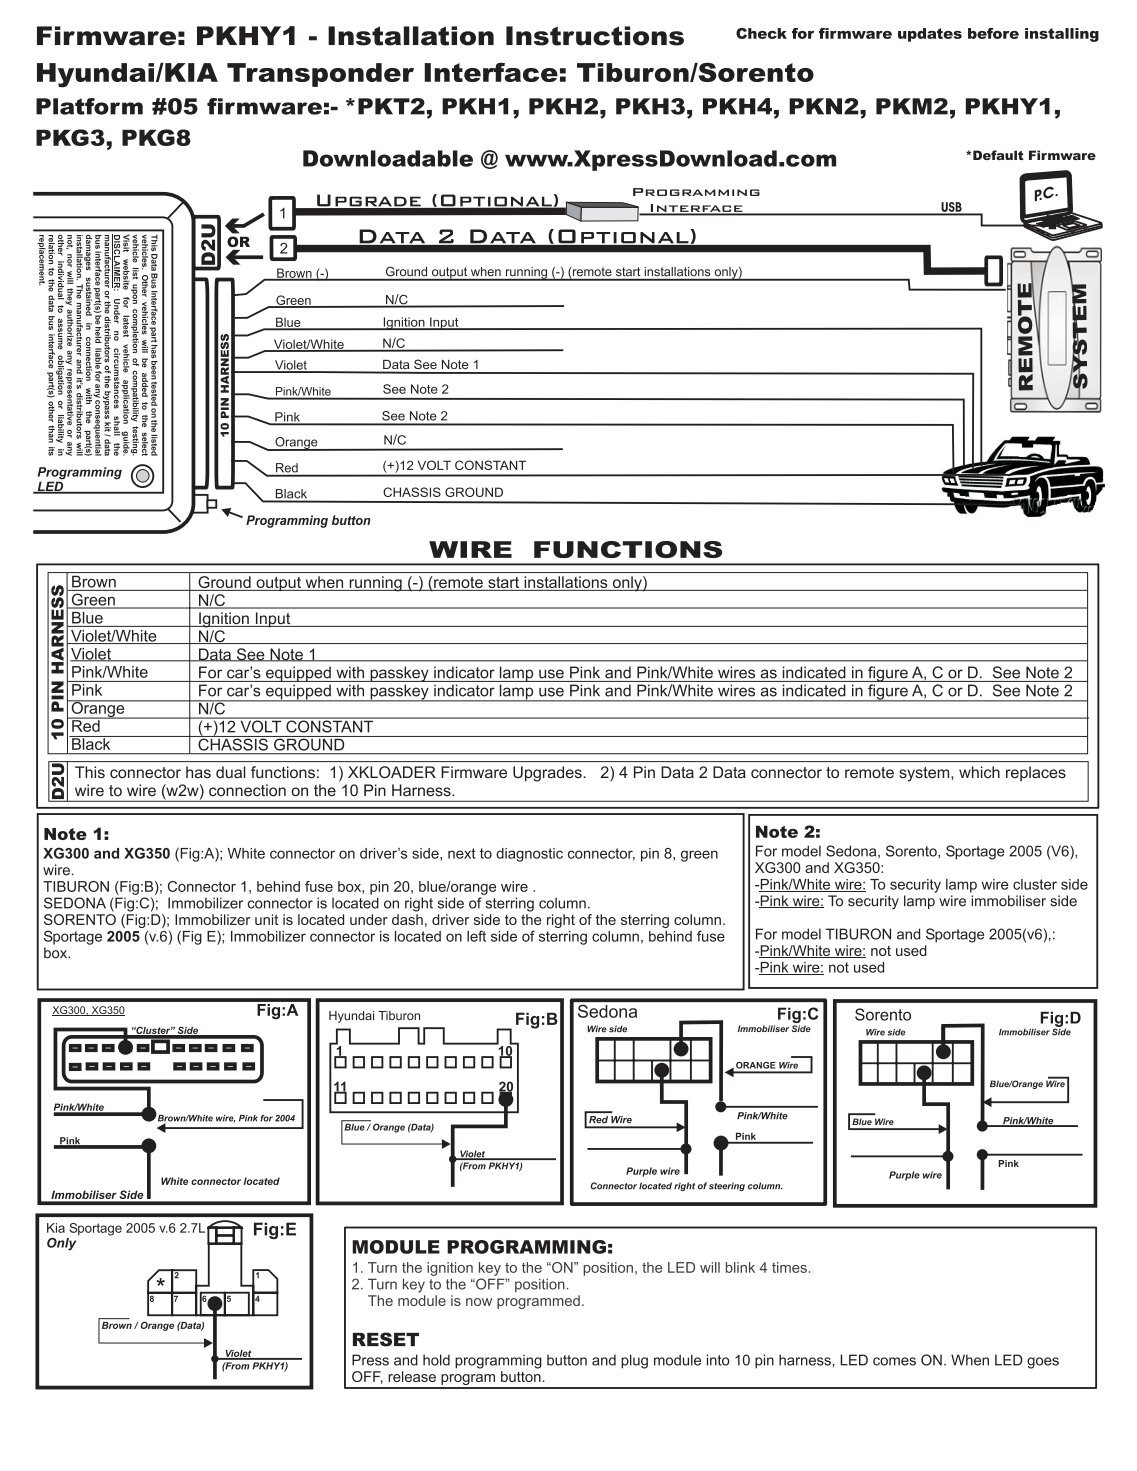 Wiring Diagram Daihatsu Applause 1991 Hijet Mira L6 Database